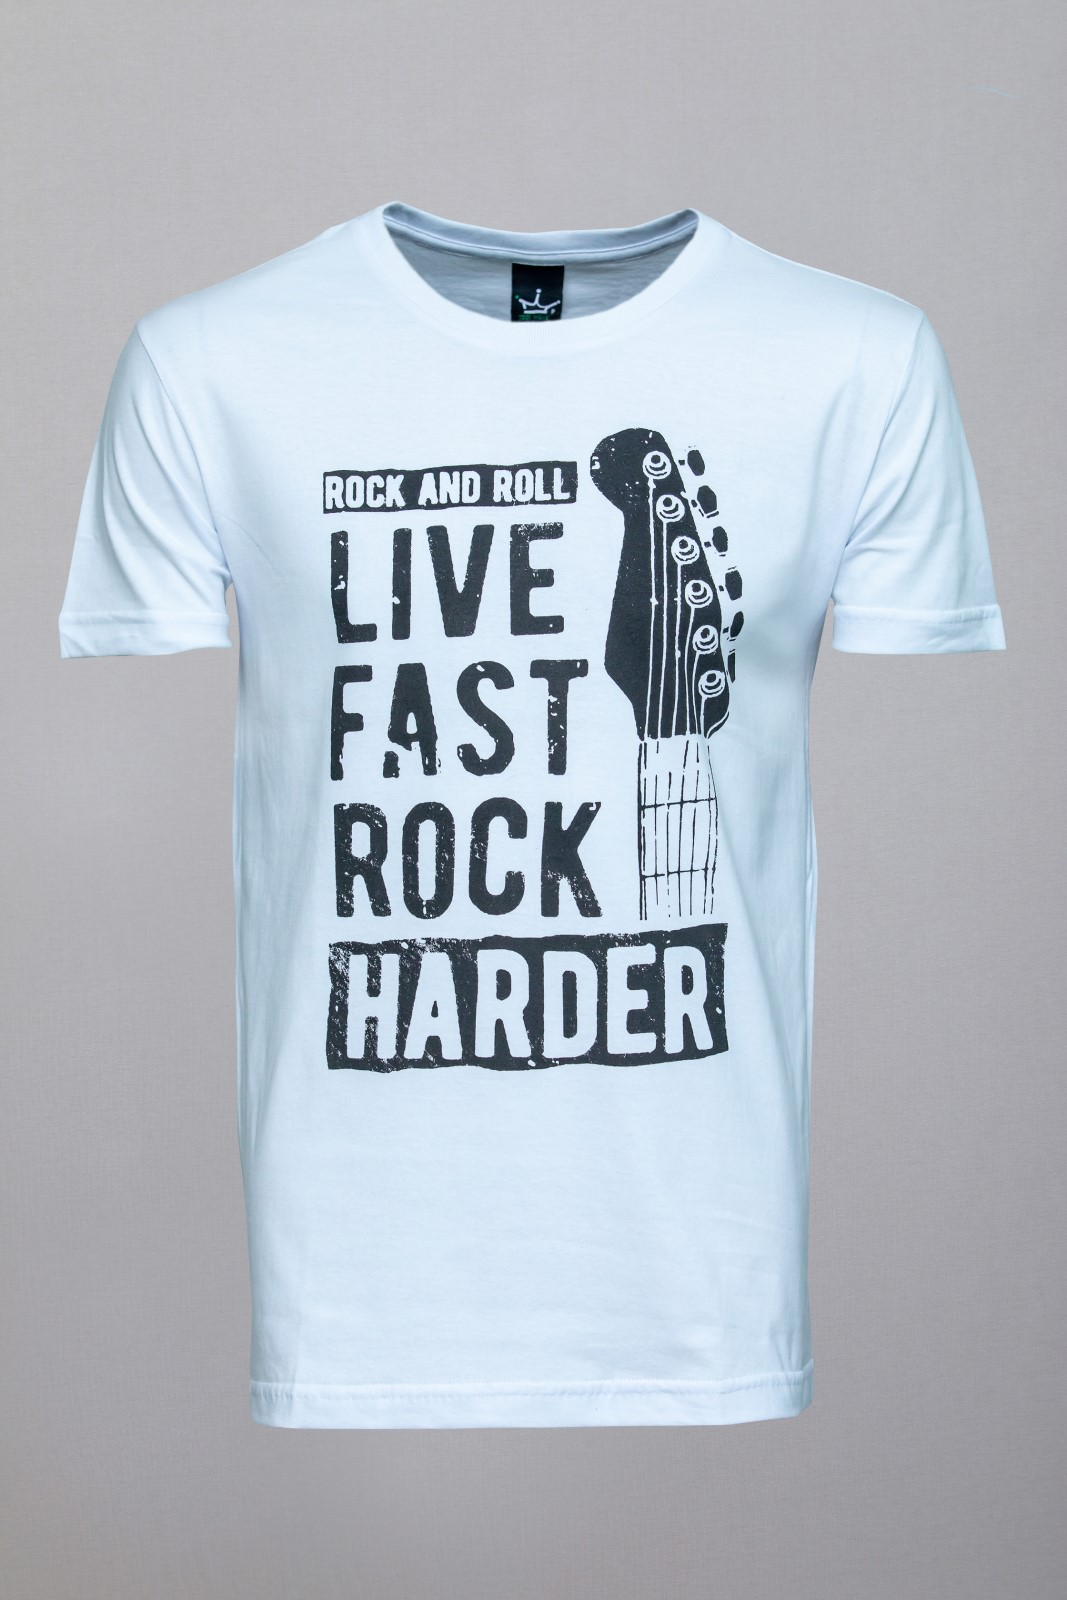 Camiseta CoolWave Live, Fast, Rock, Harder Branca